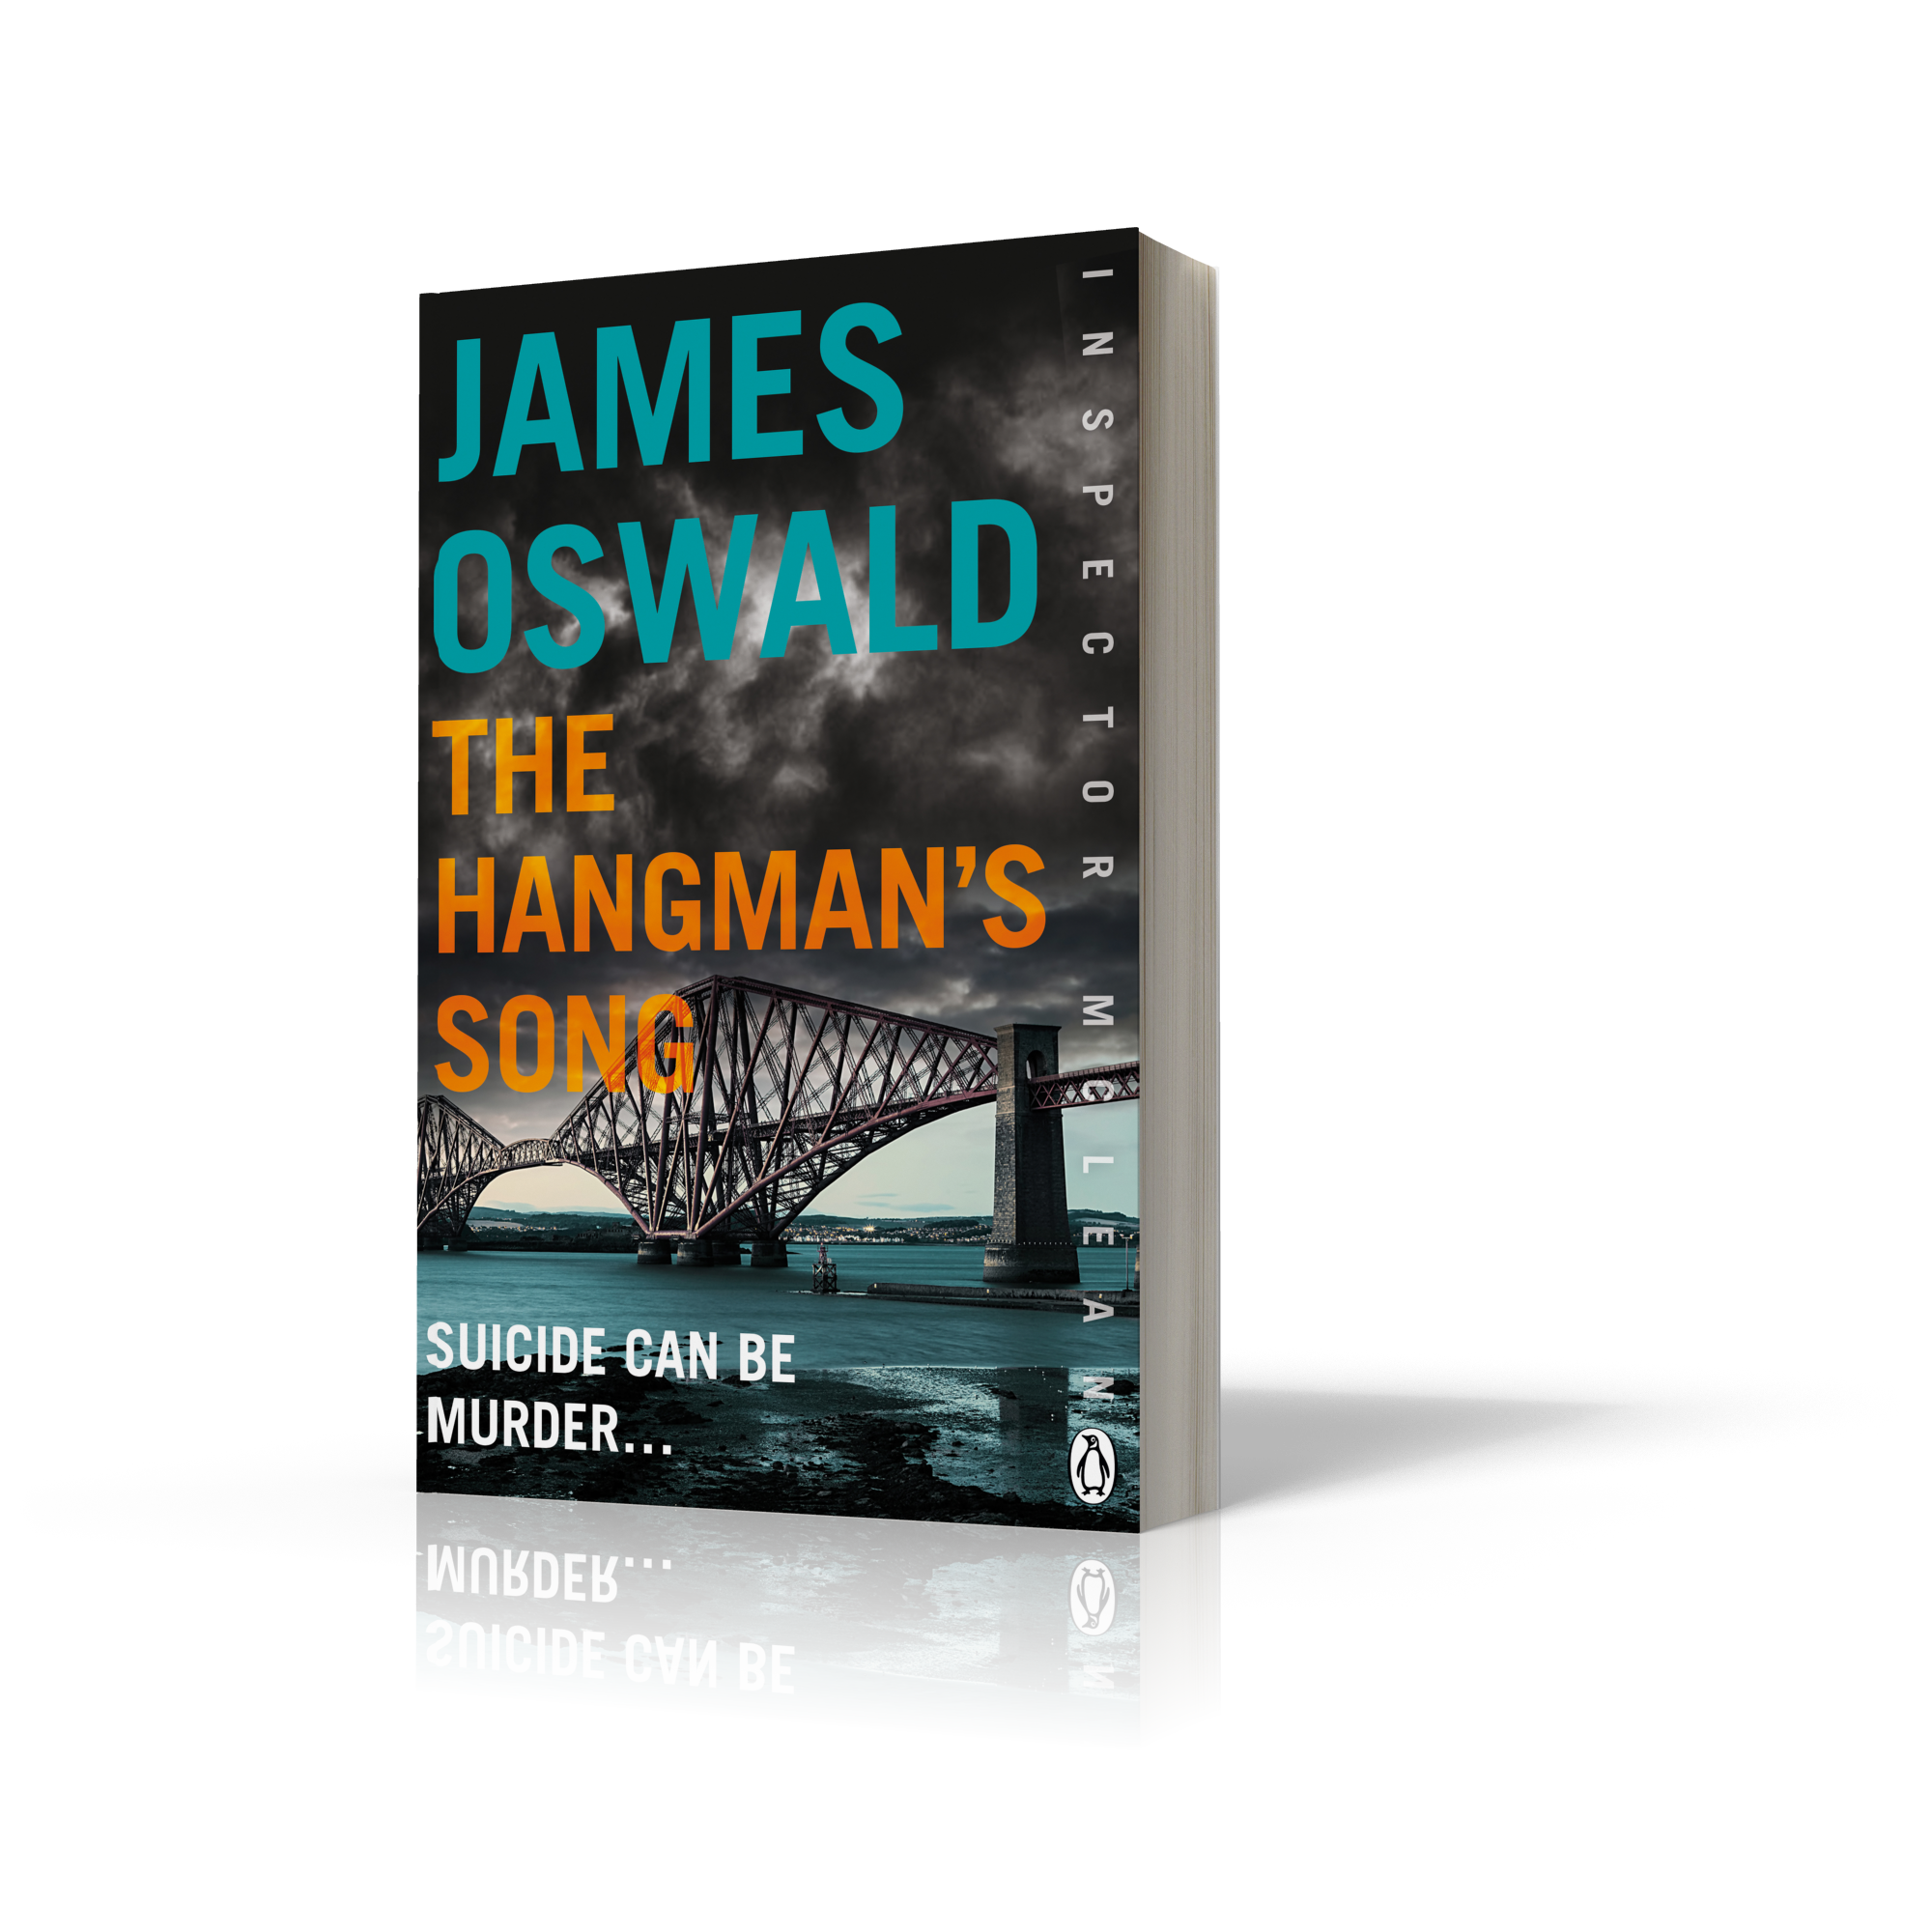 Cover Image for The Hangman's Song by James Oswald